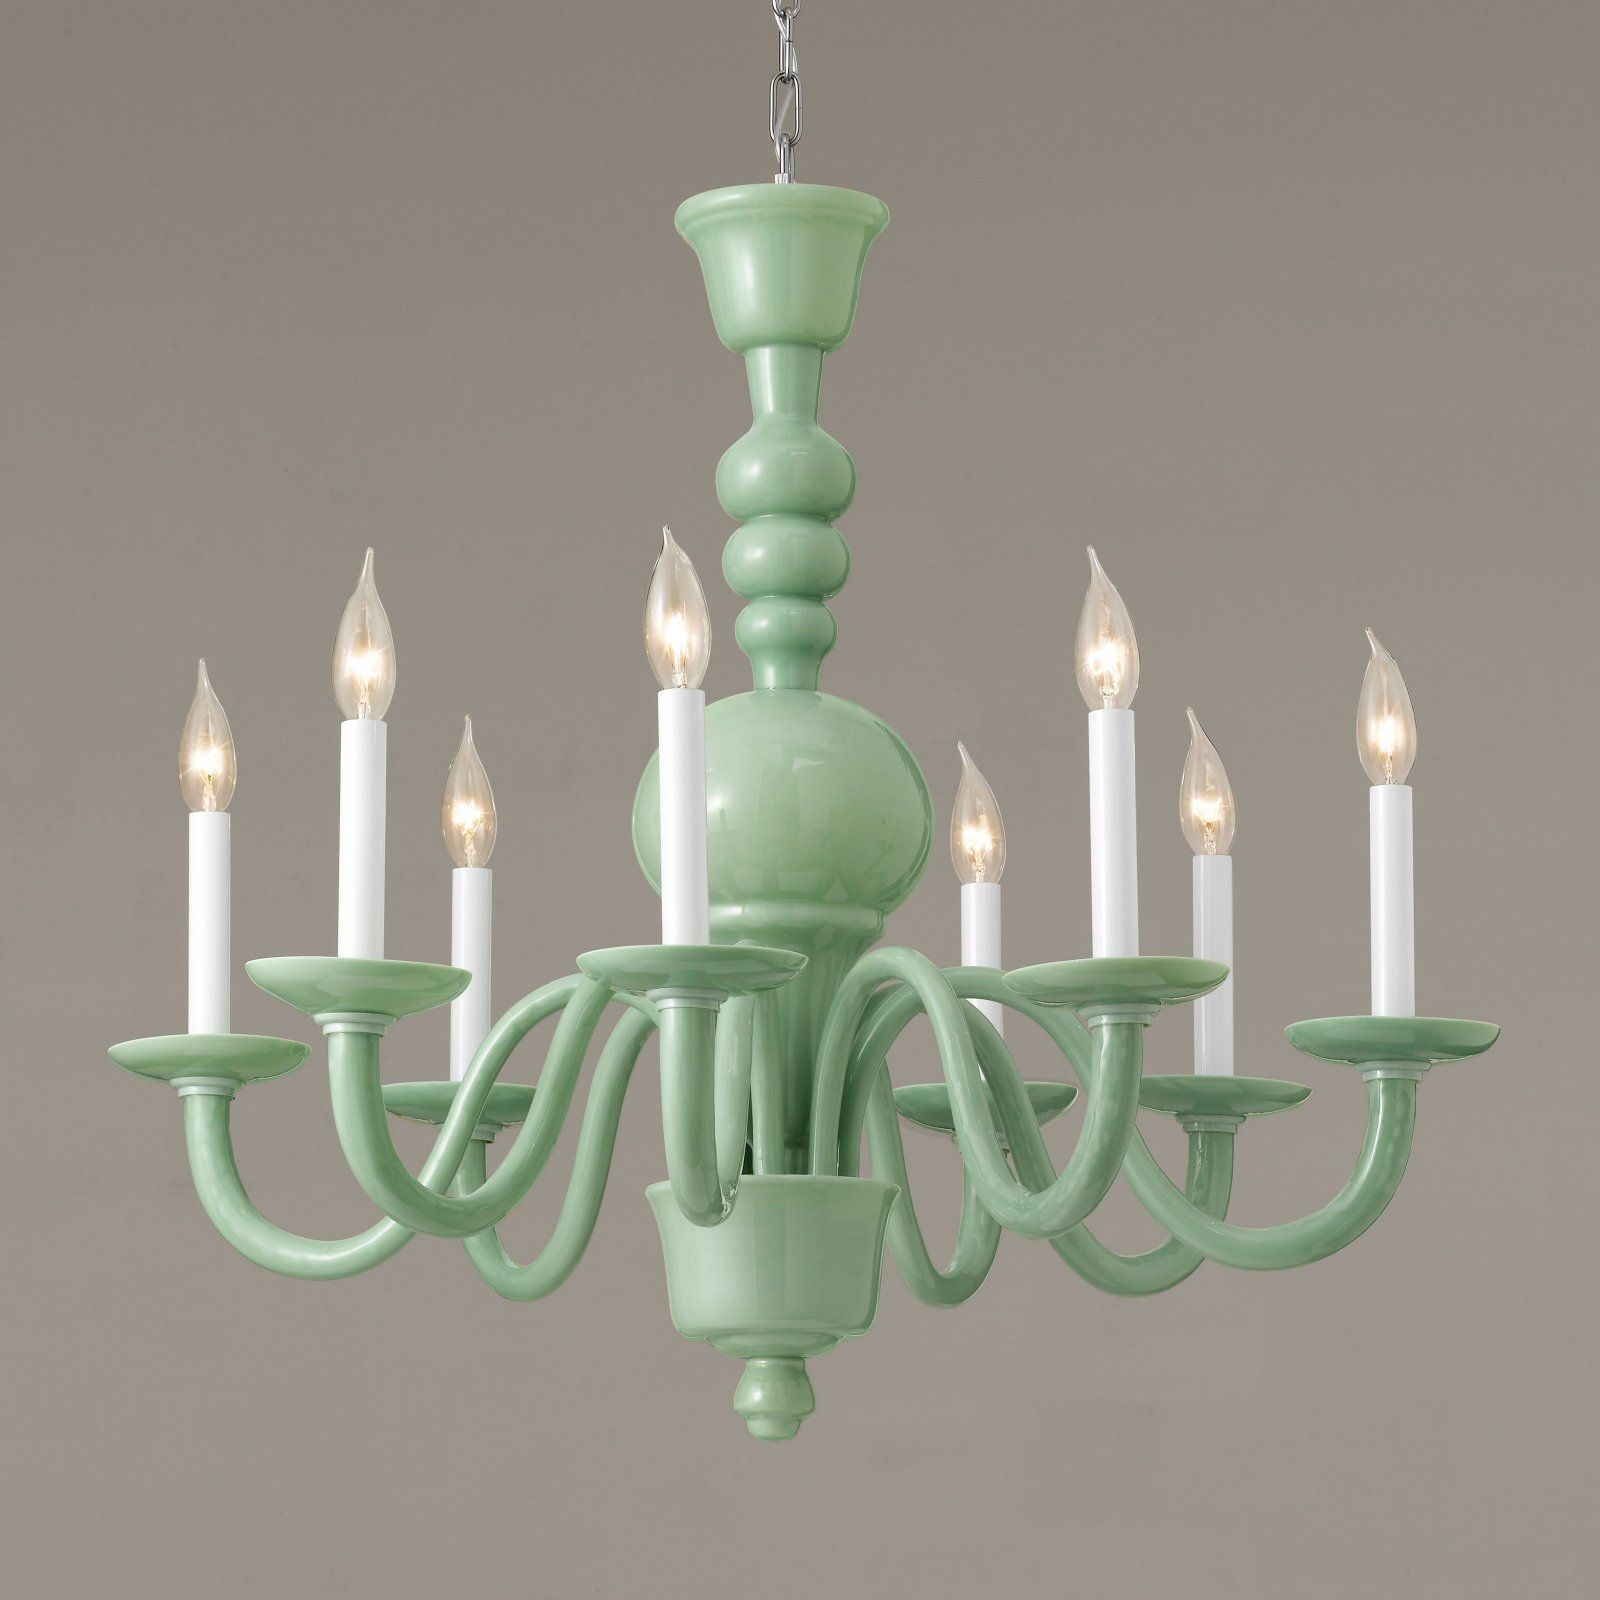 Martha stewart veneto chandelier 295w jadeite glass live the martha stewart veneto chandelier 295w jadeite glass aloadofball Gallery